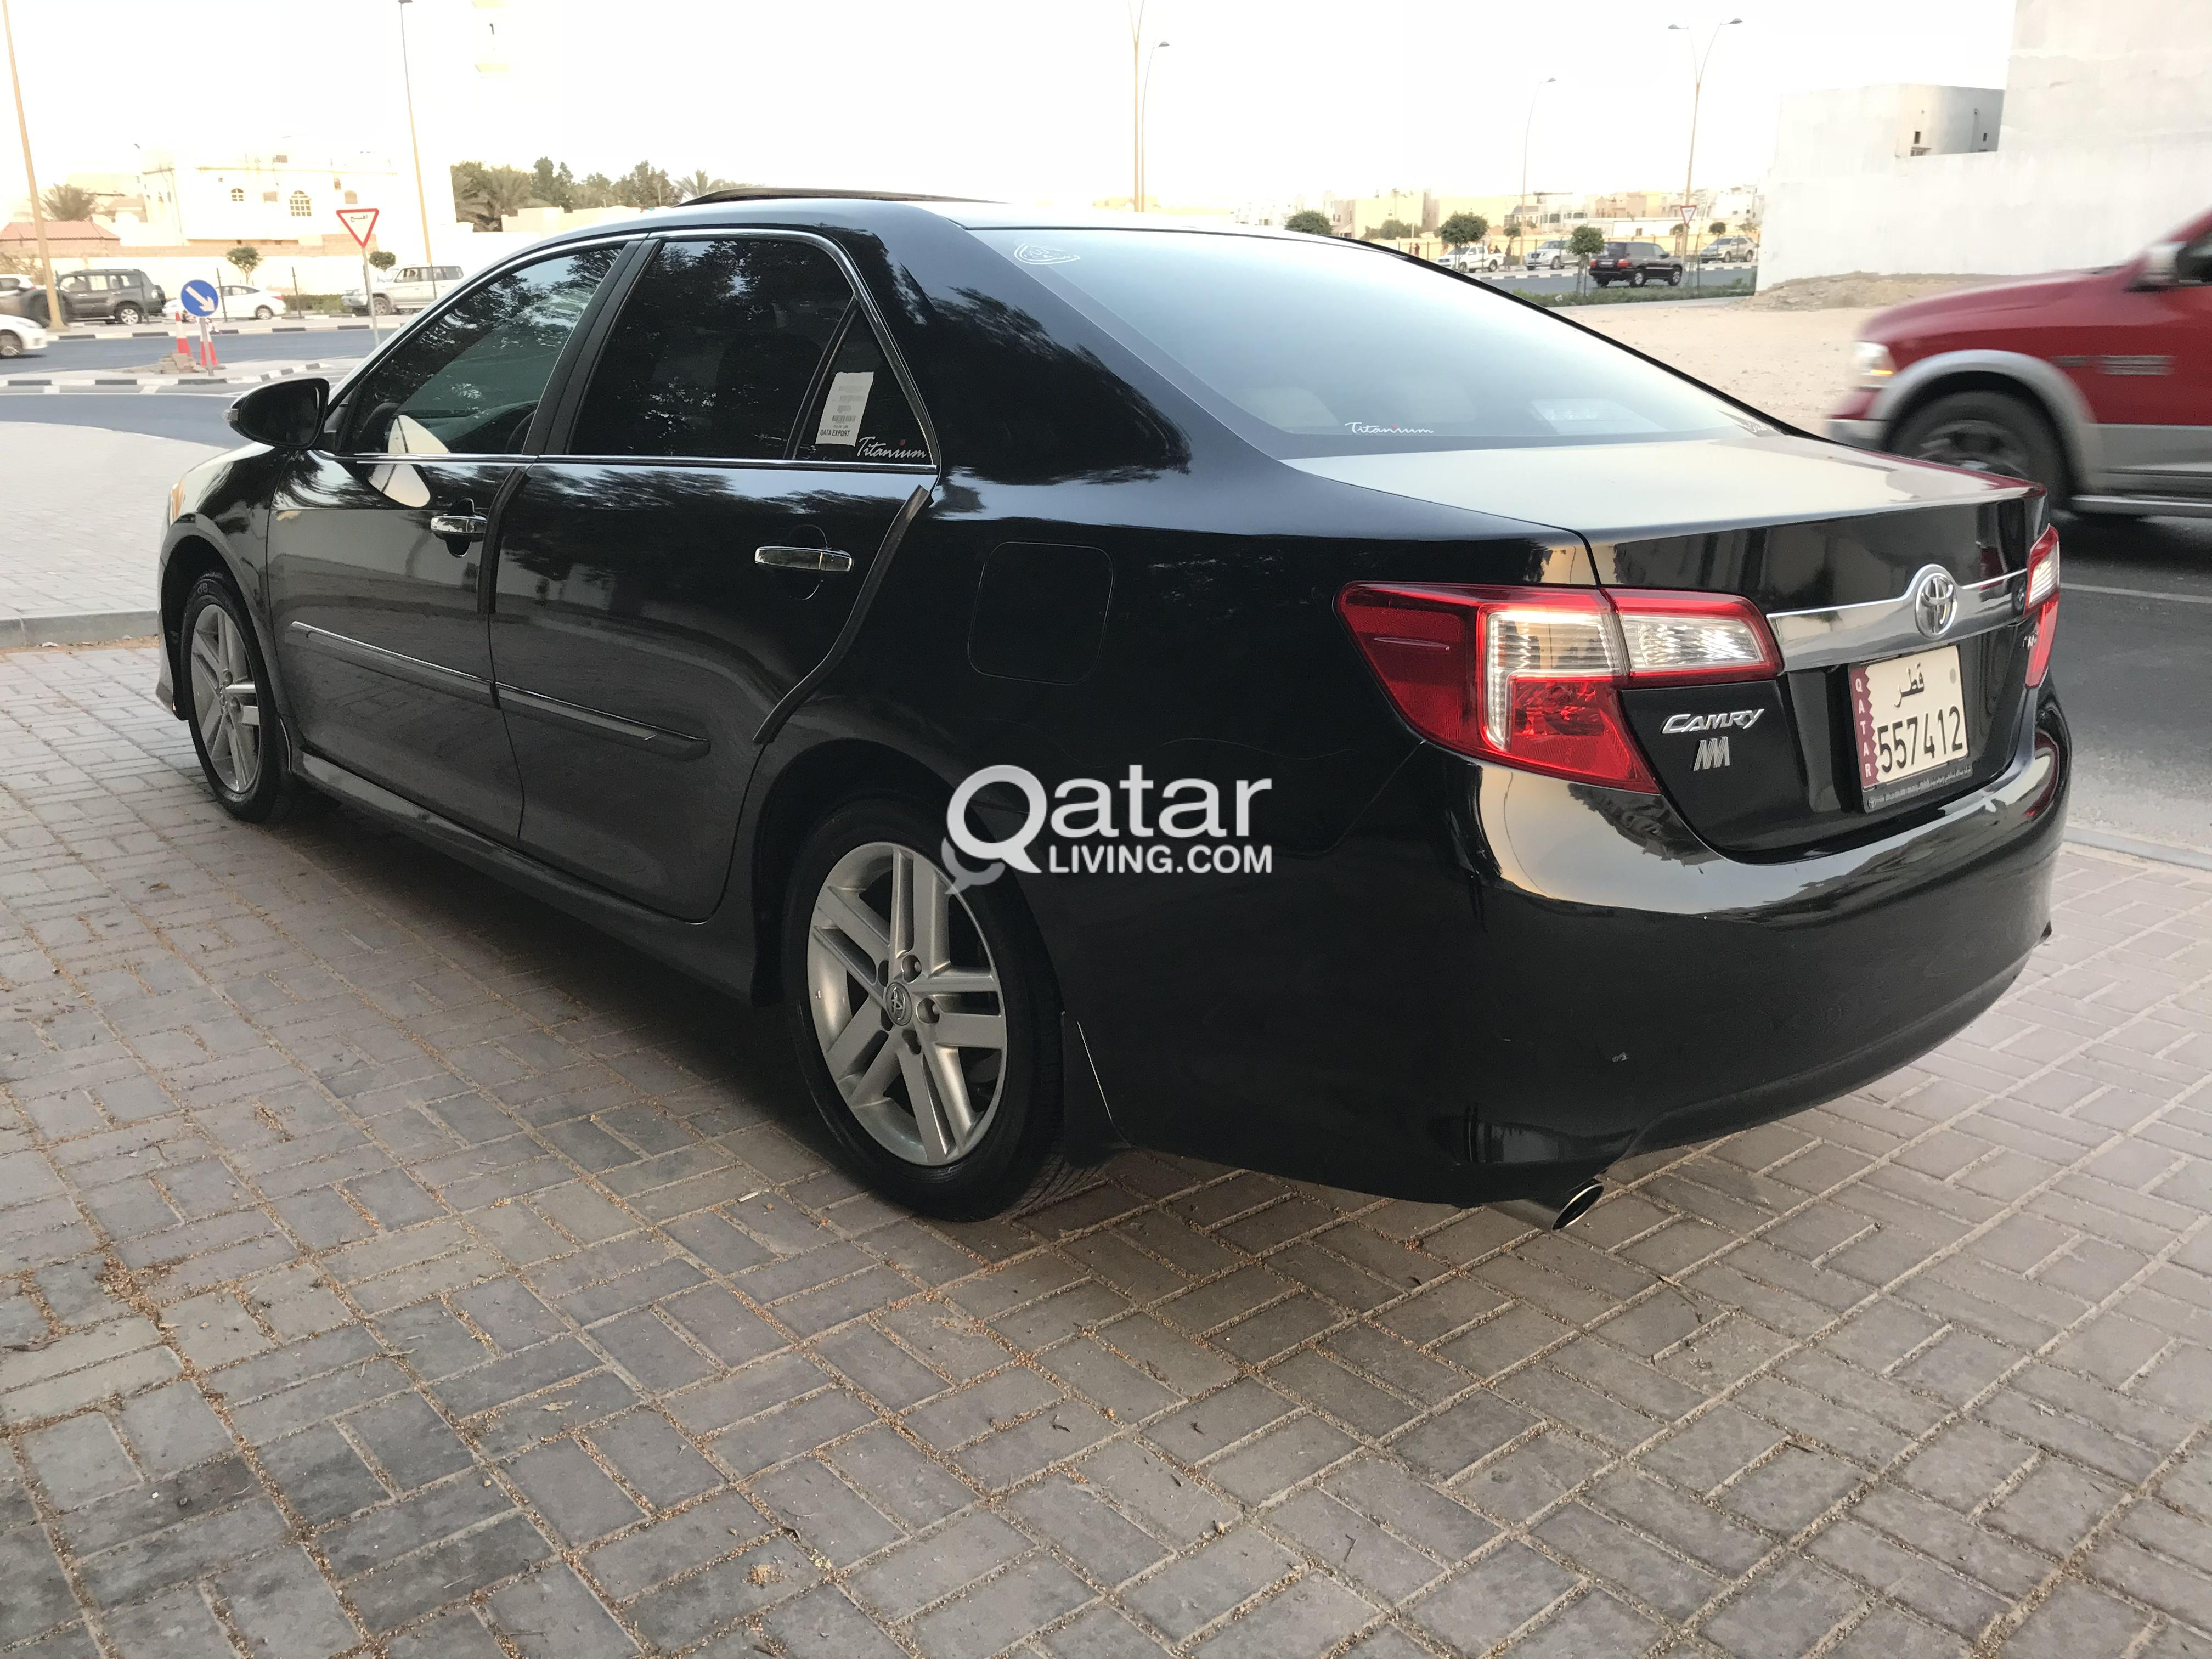 dem listings fwd front spot le toyota camry